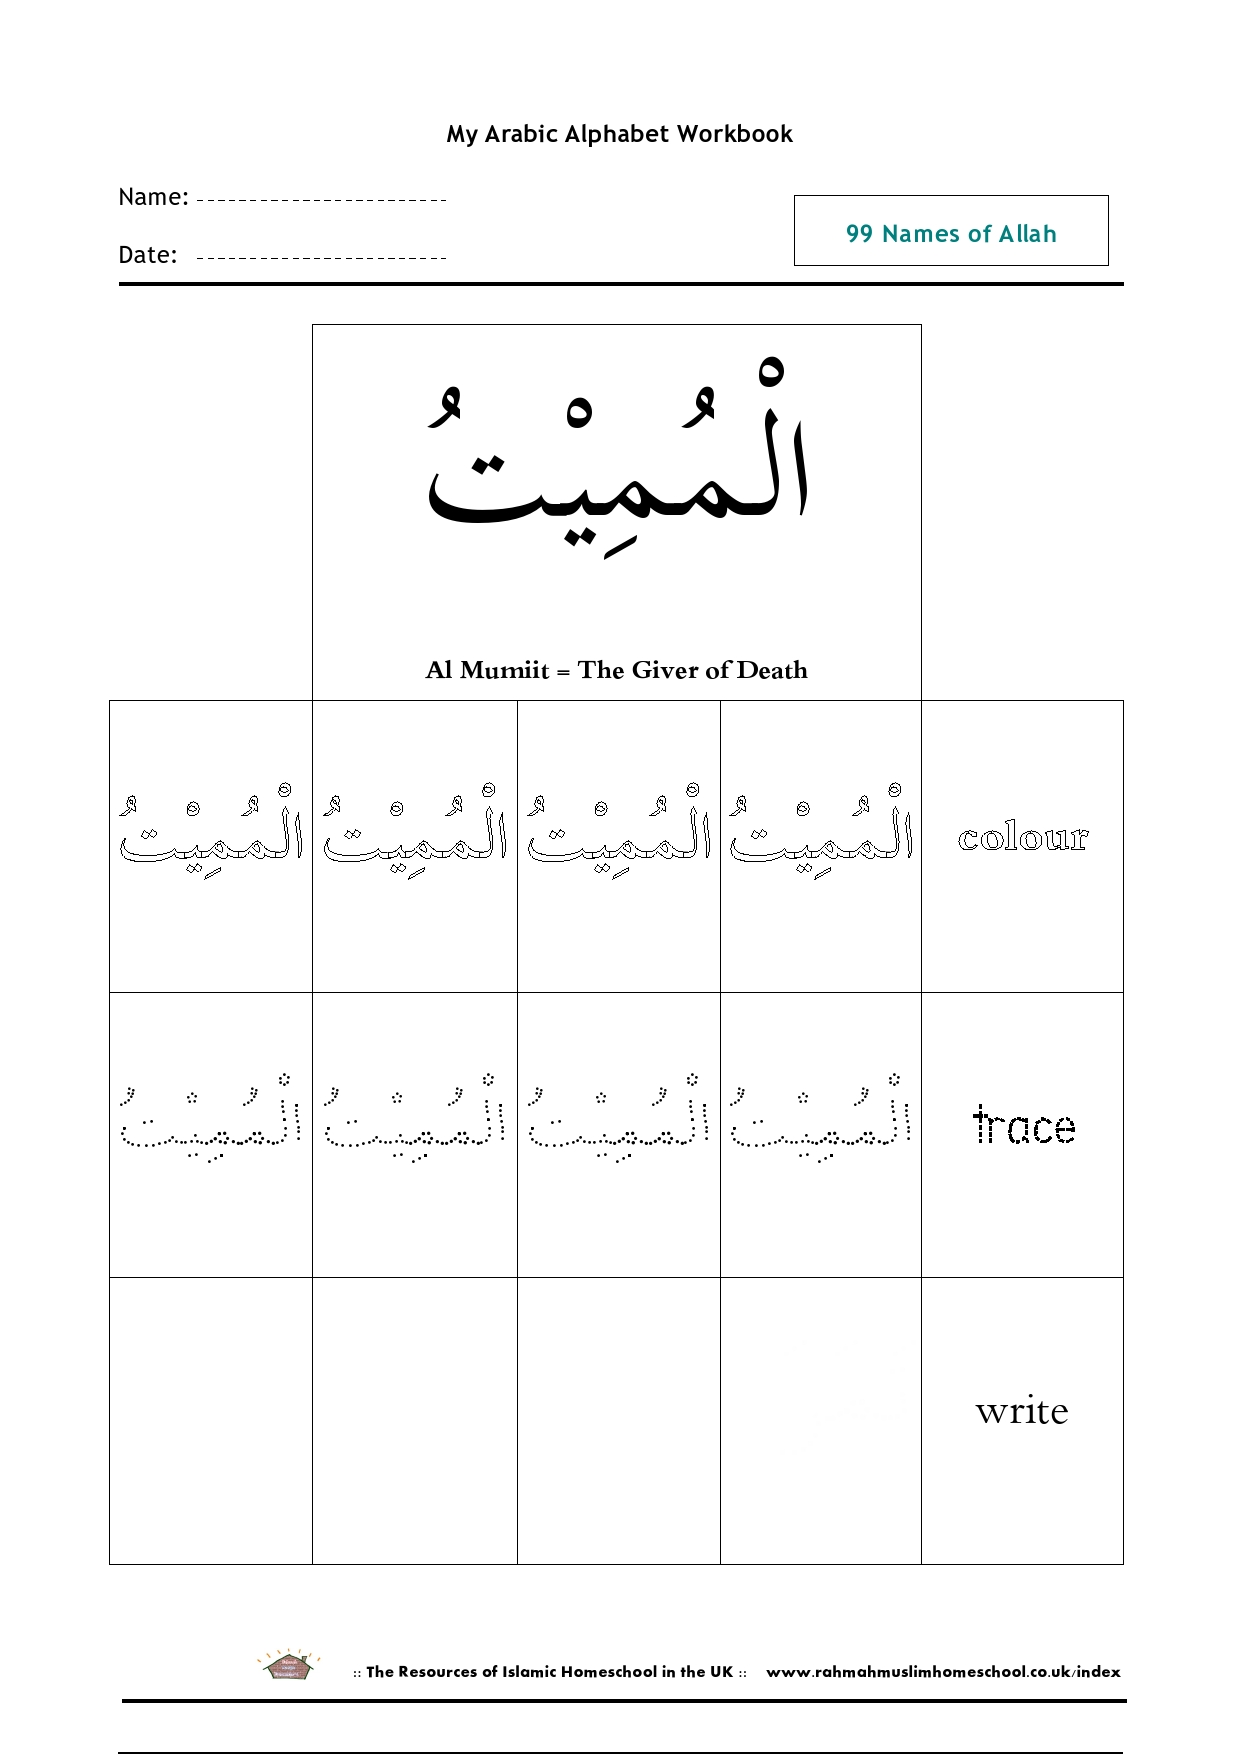 Worksheets The Giver Worksheets free arabic worksheet the 99 names of allah al mumiit giver death